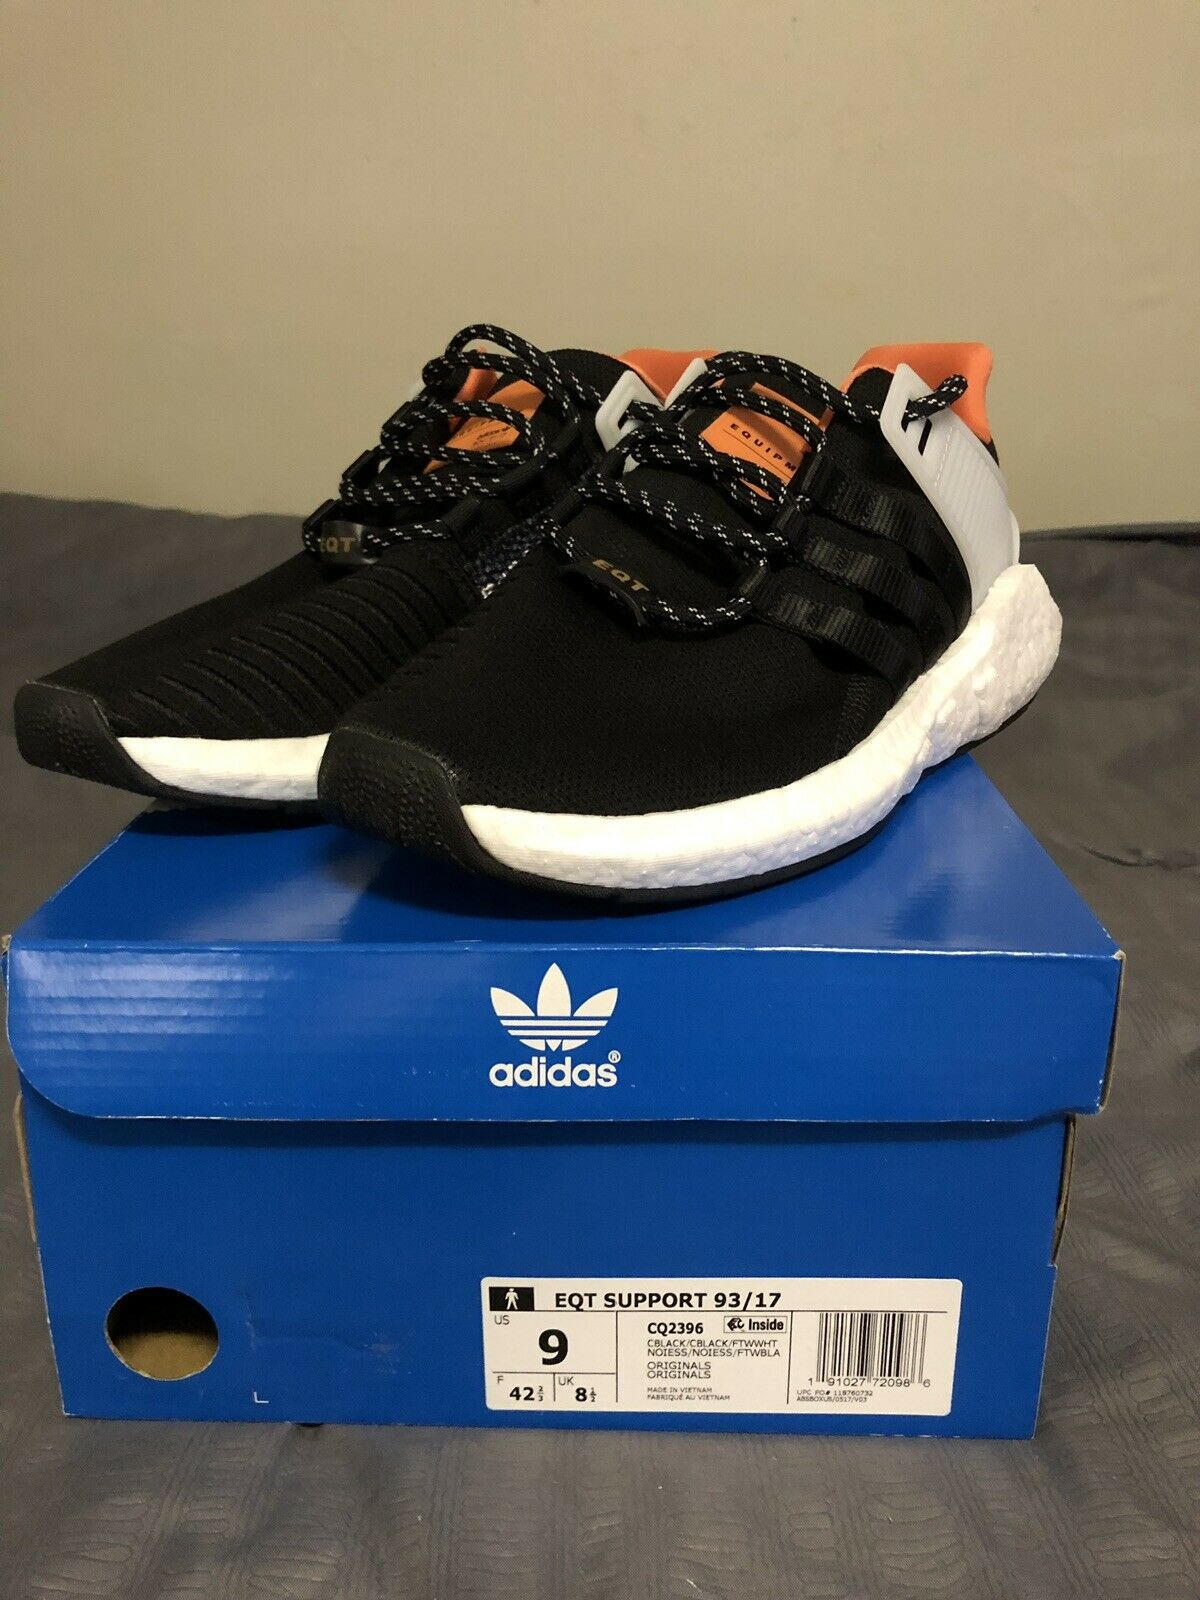 Adidas EQT Support 93 17 Brand New Men's Sneakers Size 9